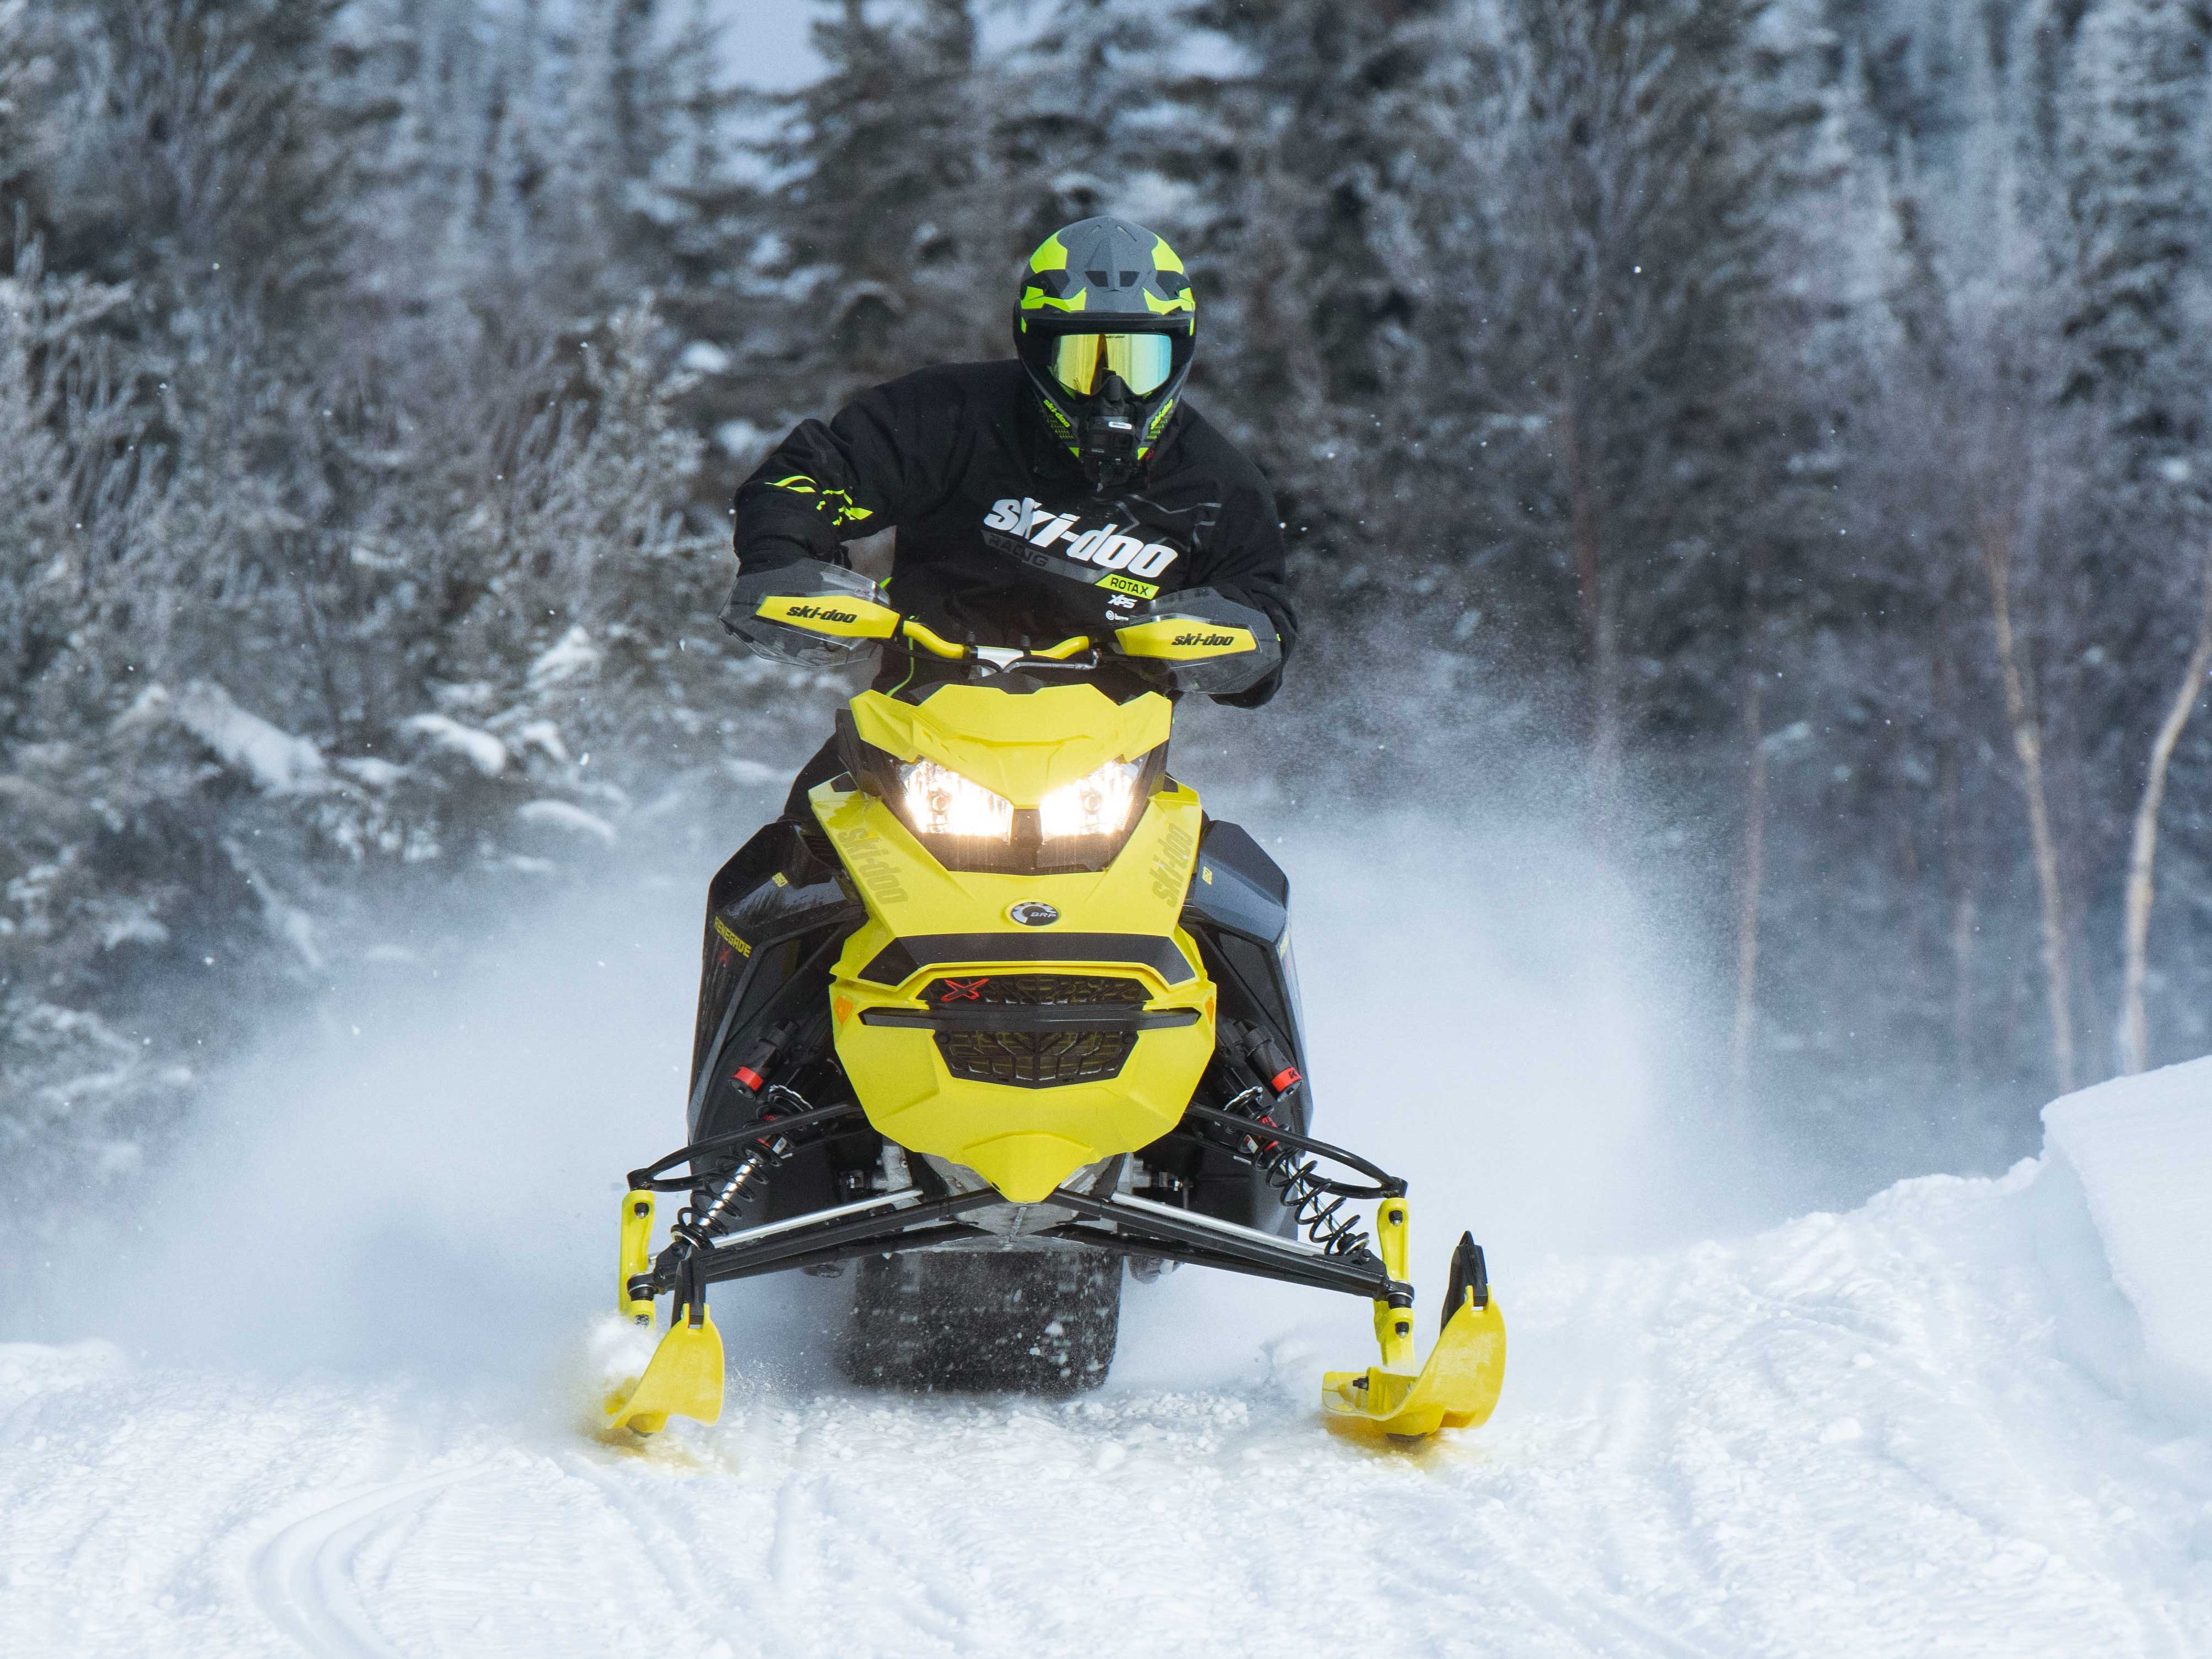 2022 Ski-Doo Renegade on a snowmobile trail